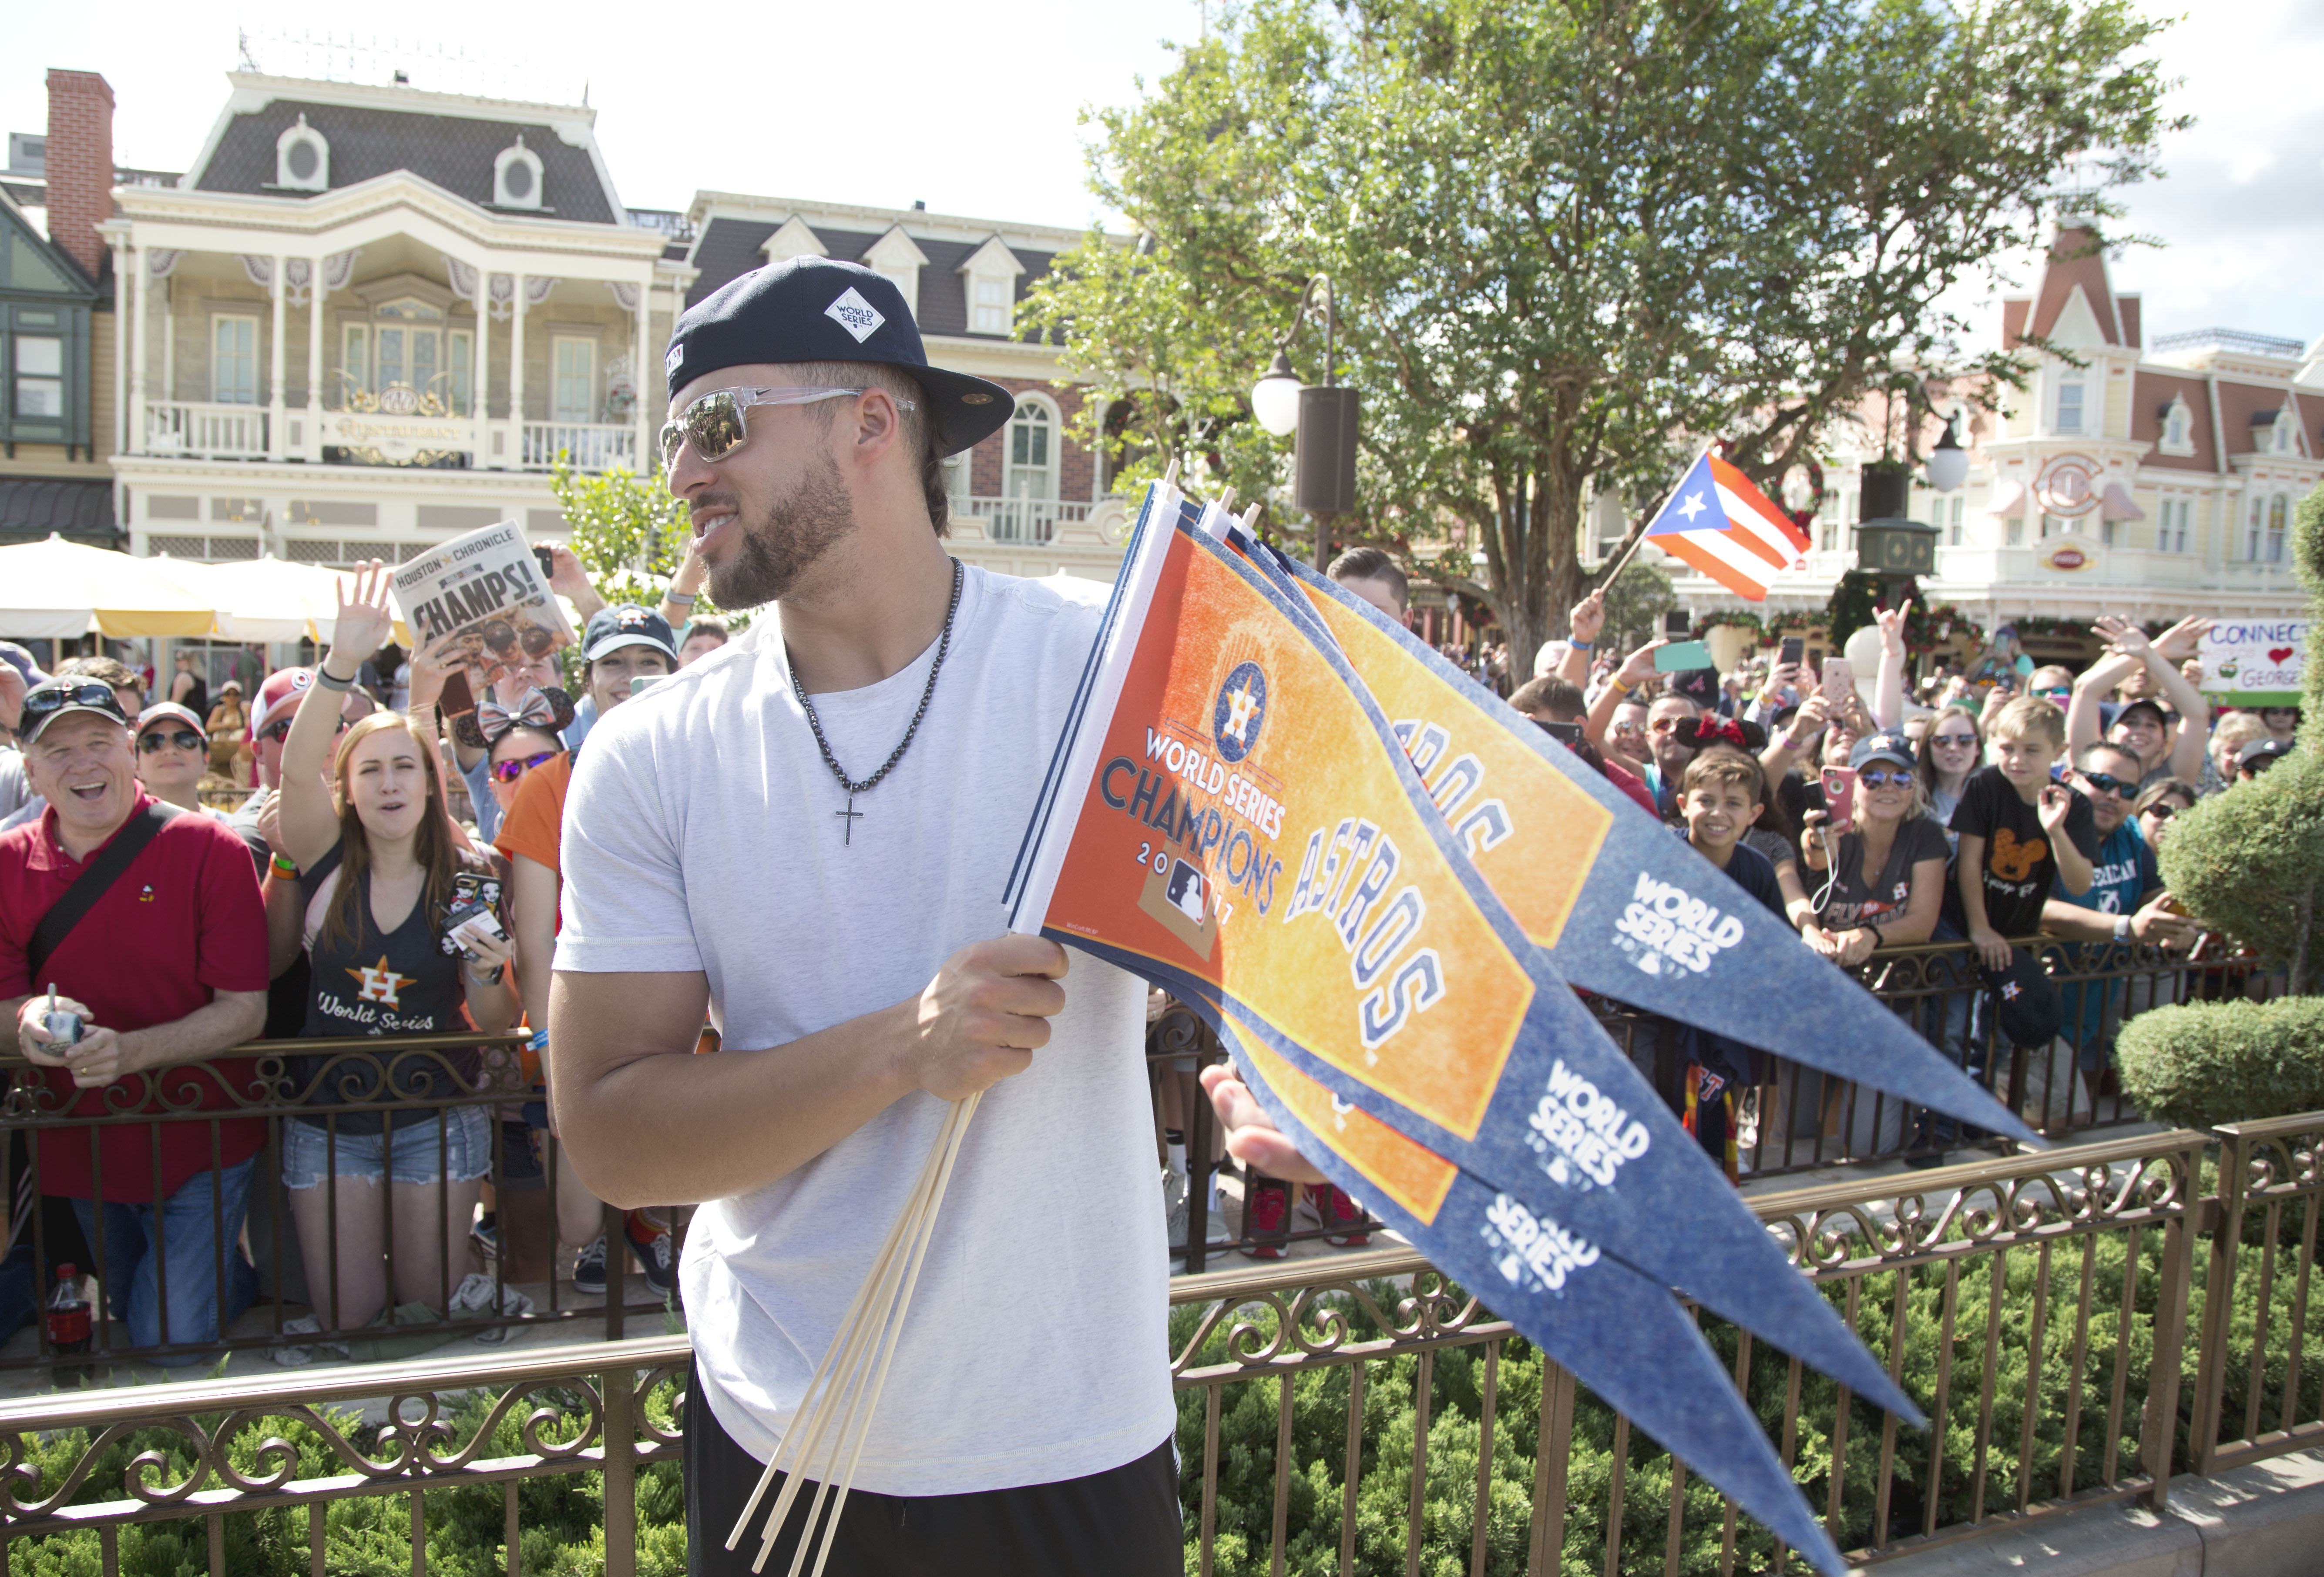 <div class='meta'><div class='origin-logo' data-origin='KTRK'></div><span class='caption-text' data-credit='Gregg Newton'>Houston Astros player and World Series MVP, George Springer, greets fans at Magic Kingdom Park in Lake Buena Vista, Fla., Saturday, Nov. 4, 2017.</span></div>